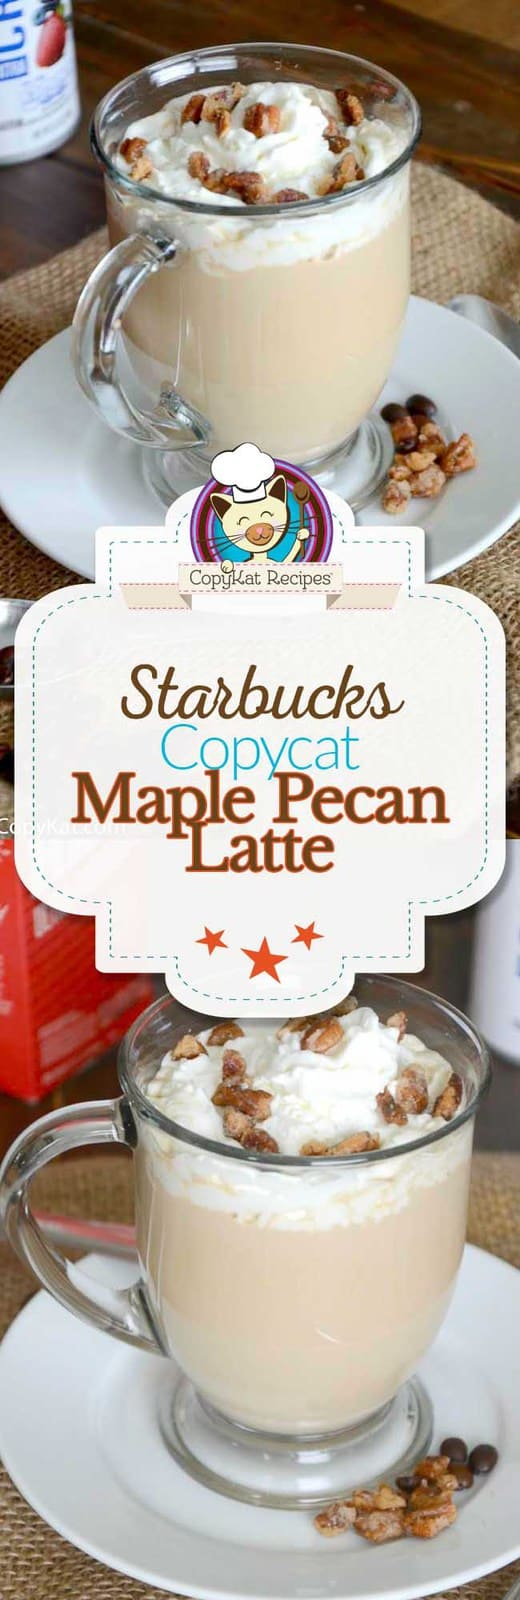 You can recreate you own version of the copycat Starbucks Maple Pecan Latte at home with this easy recipe.   #copycat #coffee #starbucks #latte